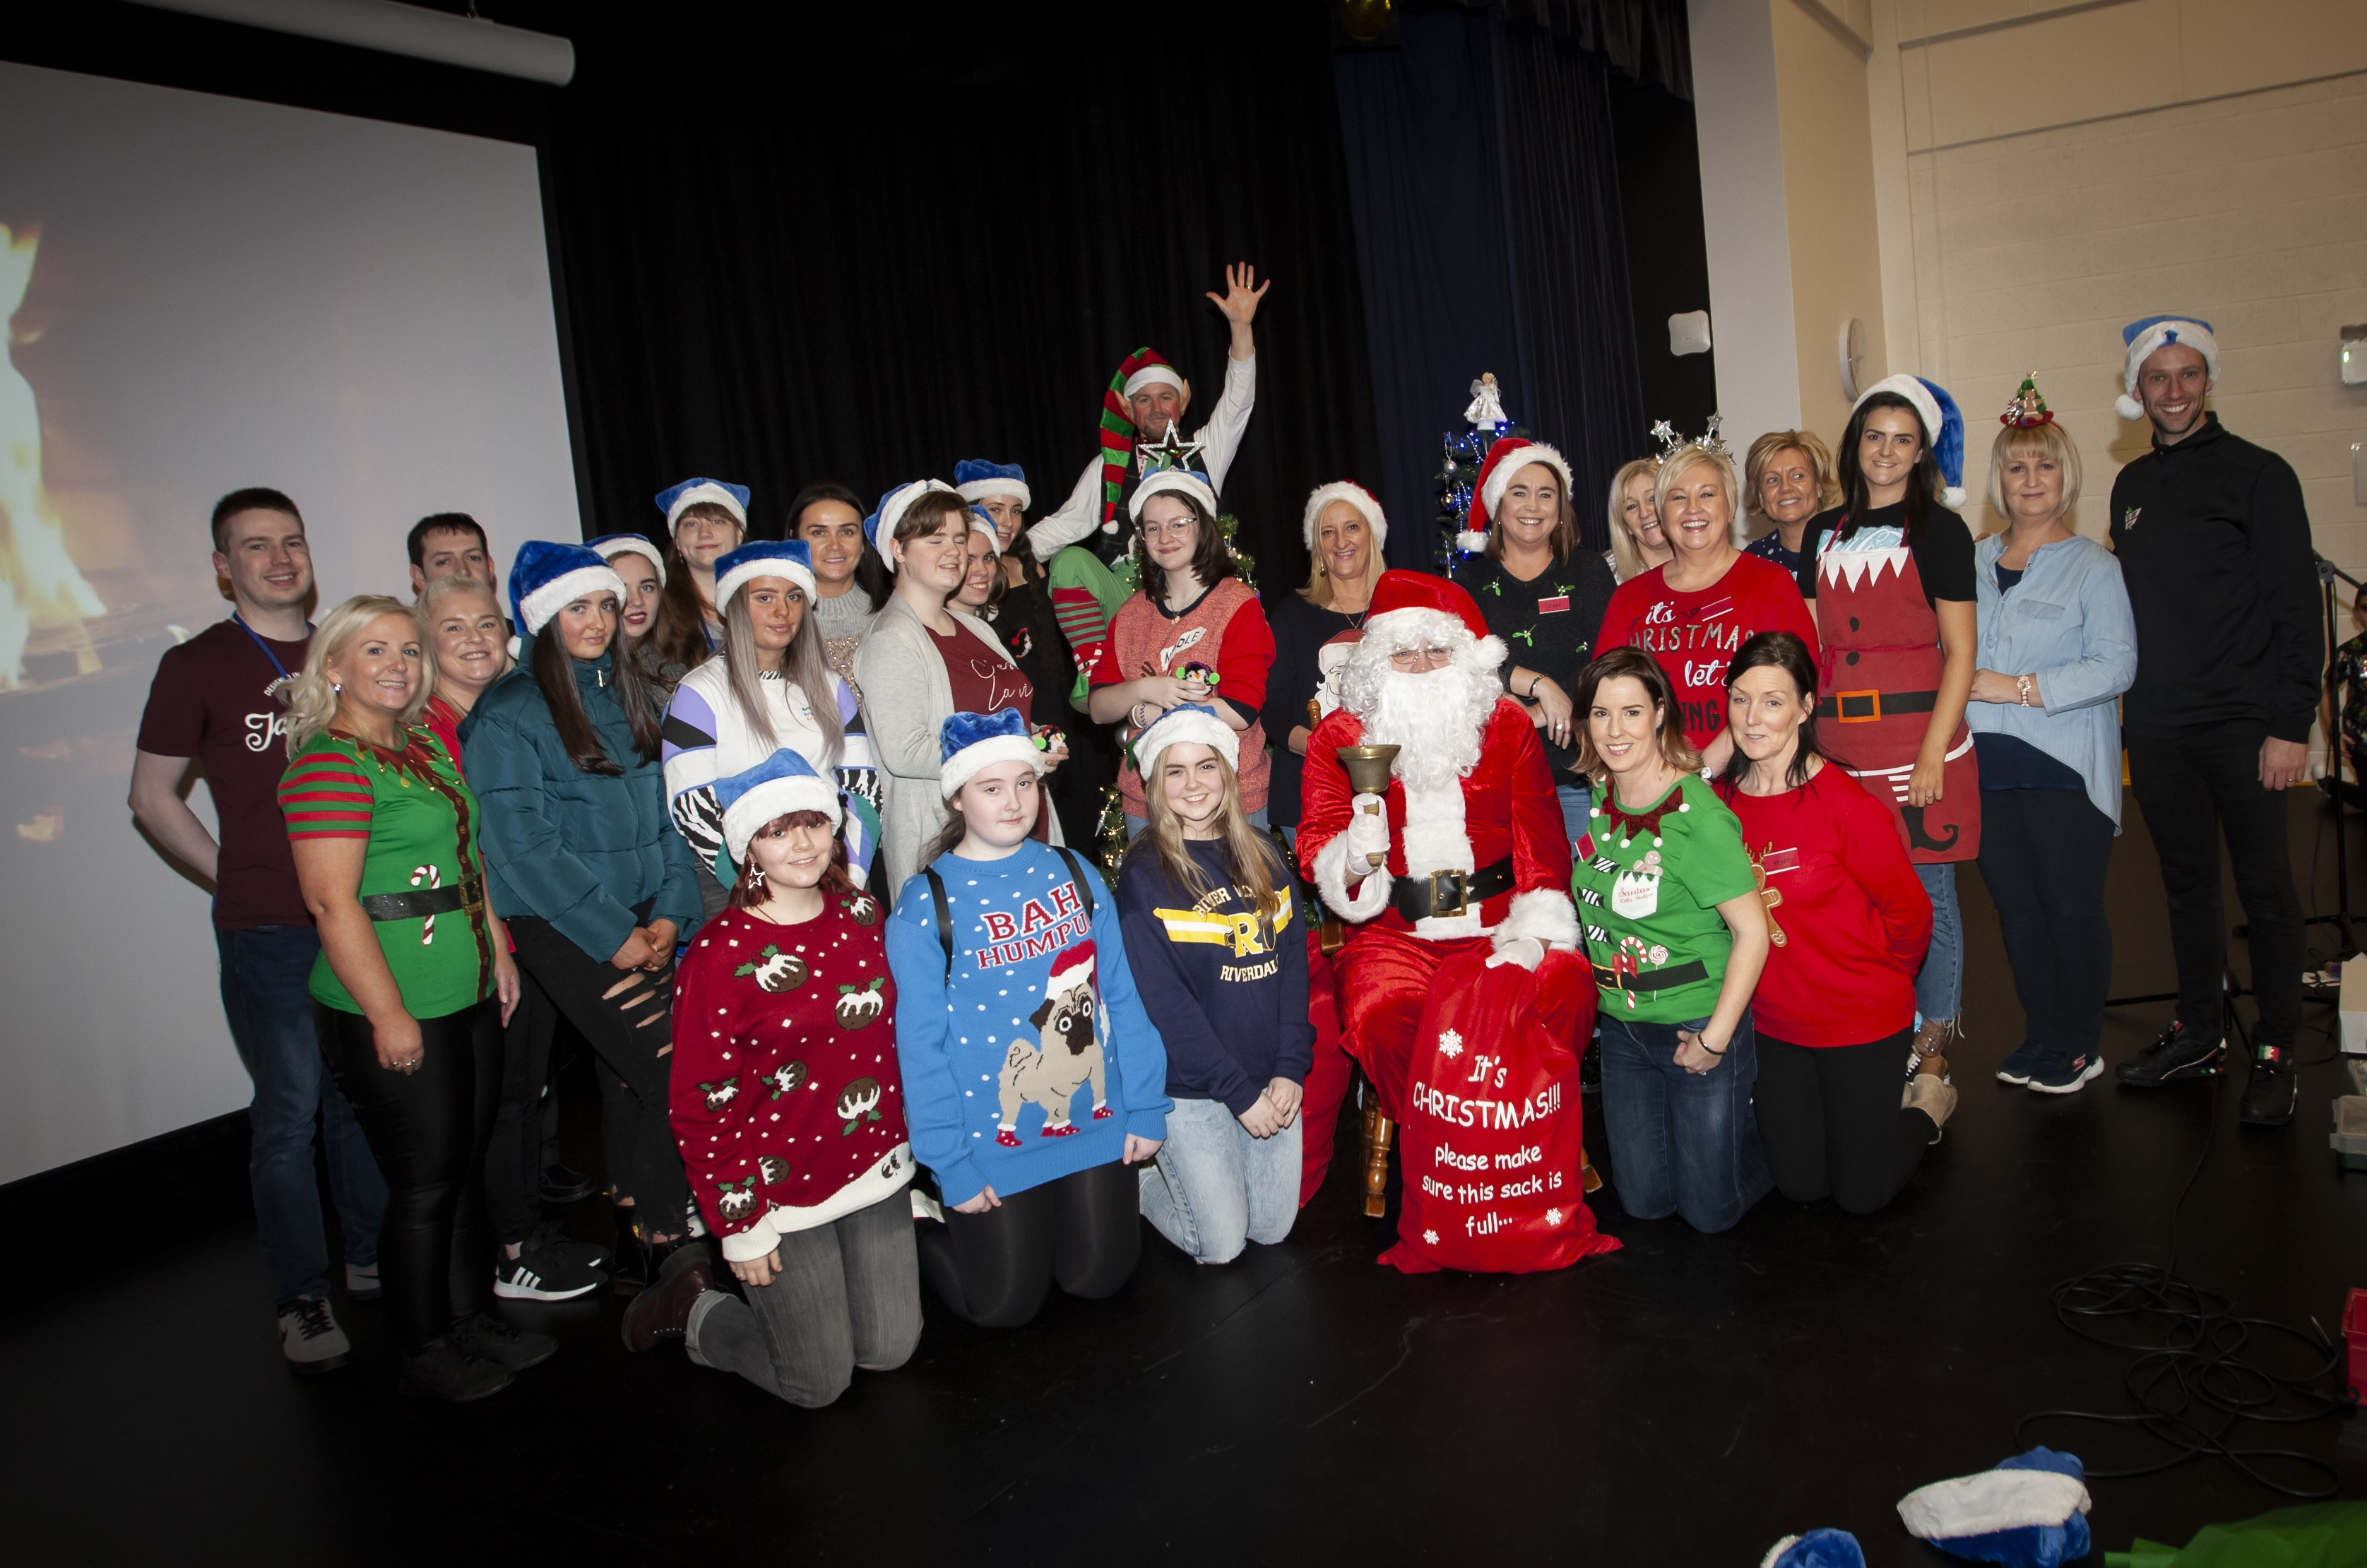 Some of the staff and pupils pictured with Santa Claus during Saturday's St. Mary's Annual Christmas Craft Fair at the school. (Photos: jim McCafferty Photography)